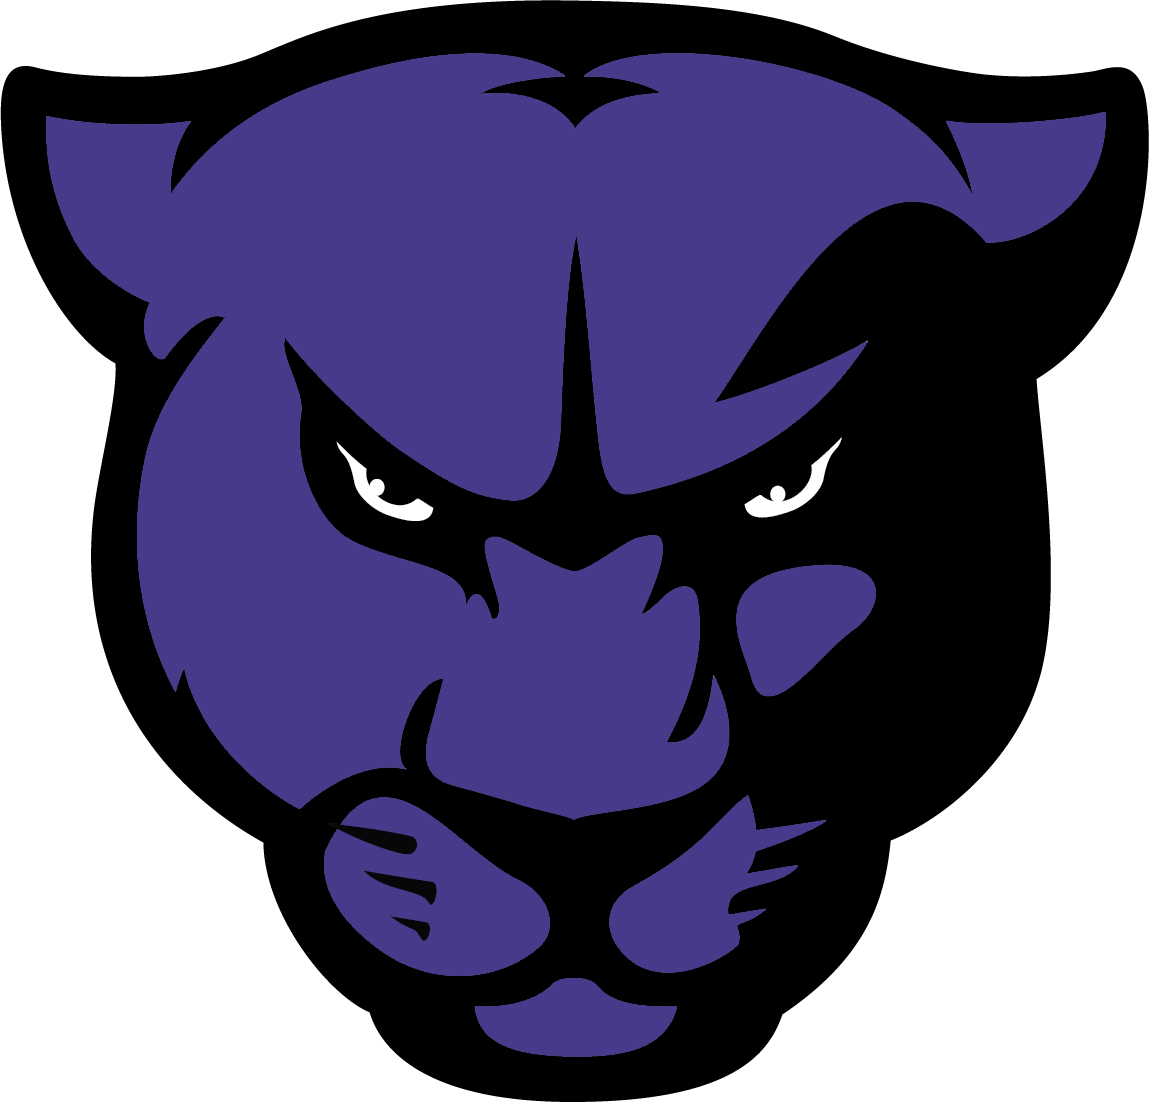 Panther Head TransparentBackground